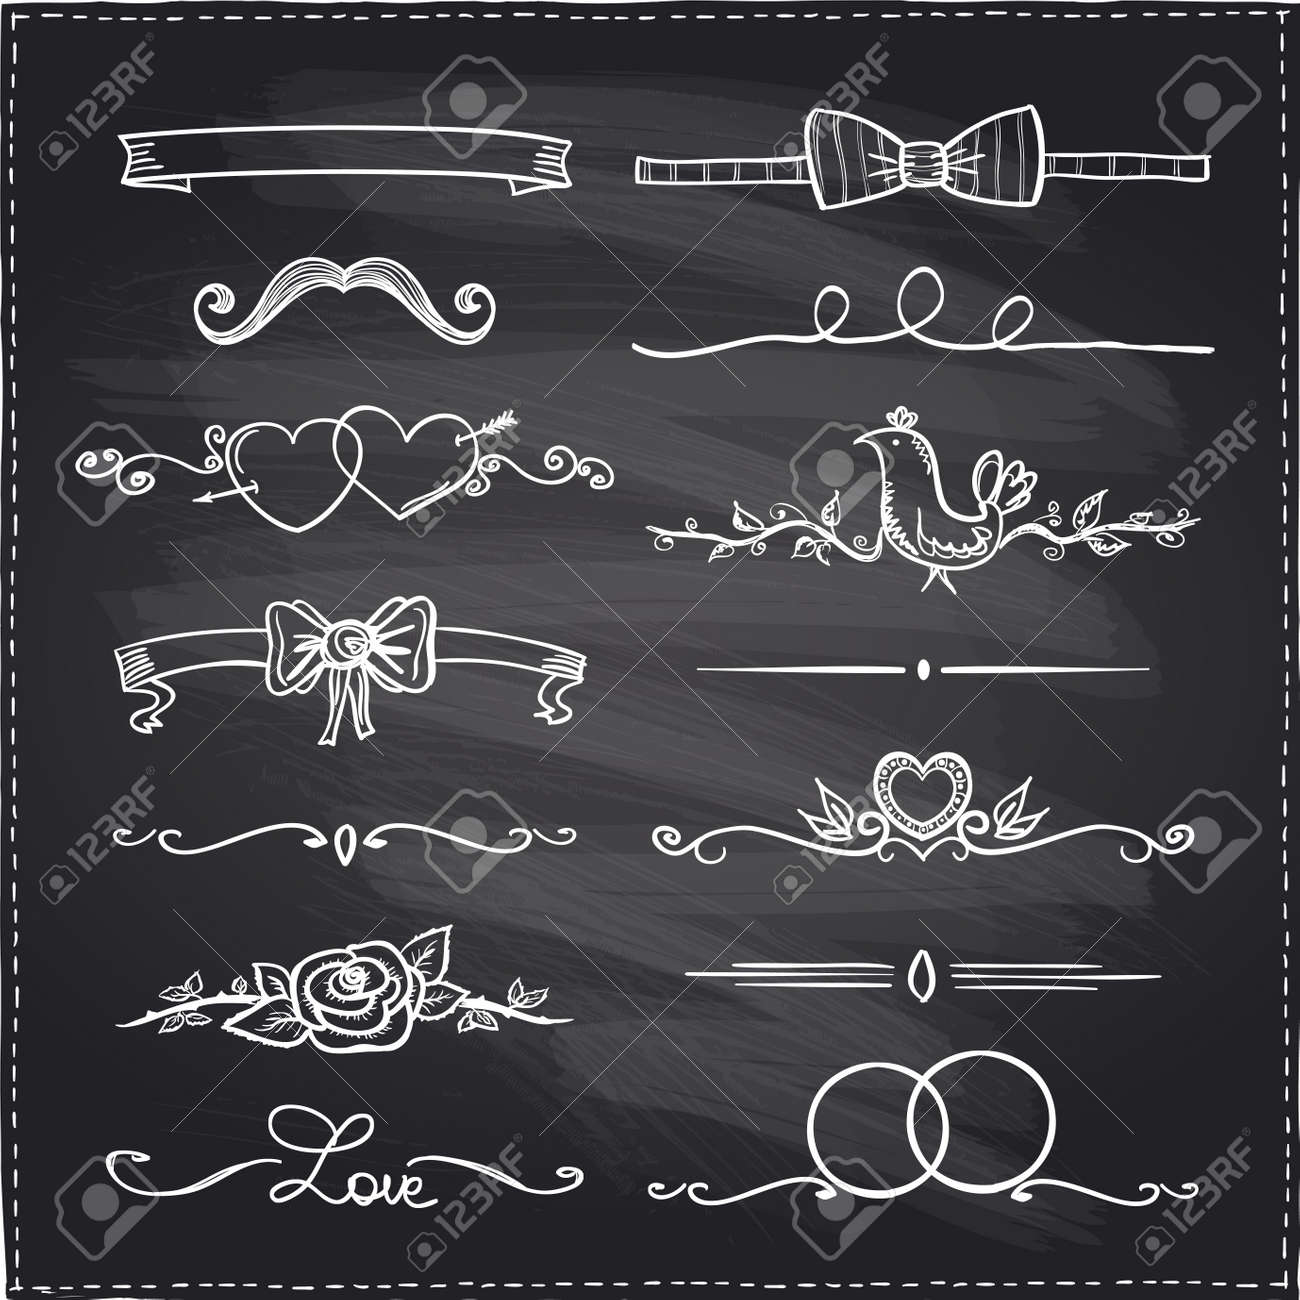 chalkboard hand drawn graphic elements love and wedding theme